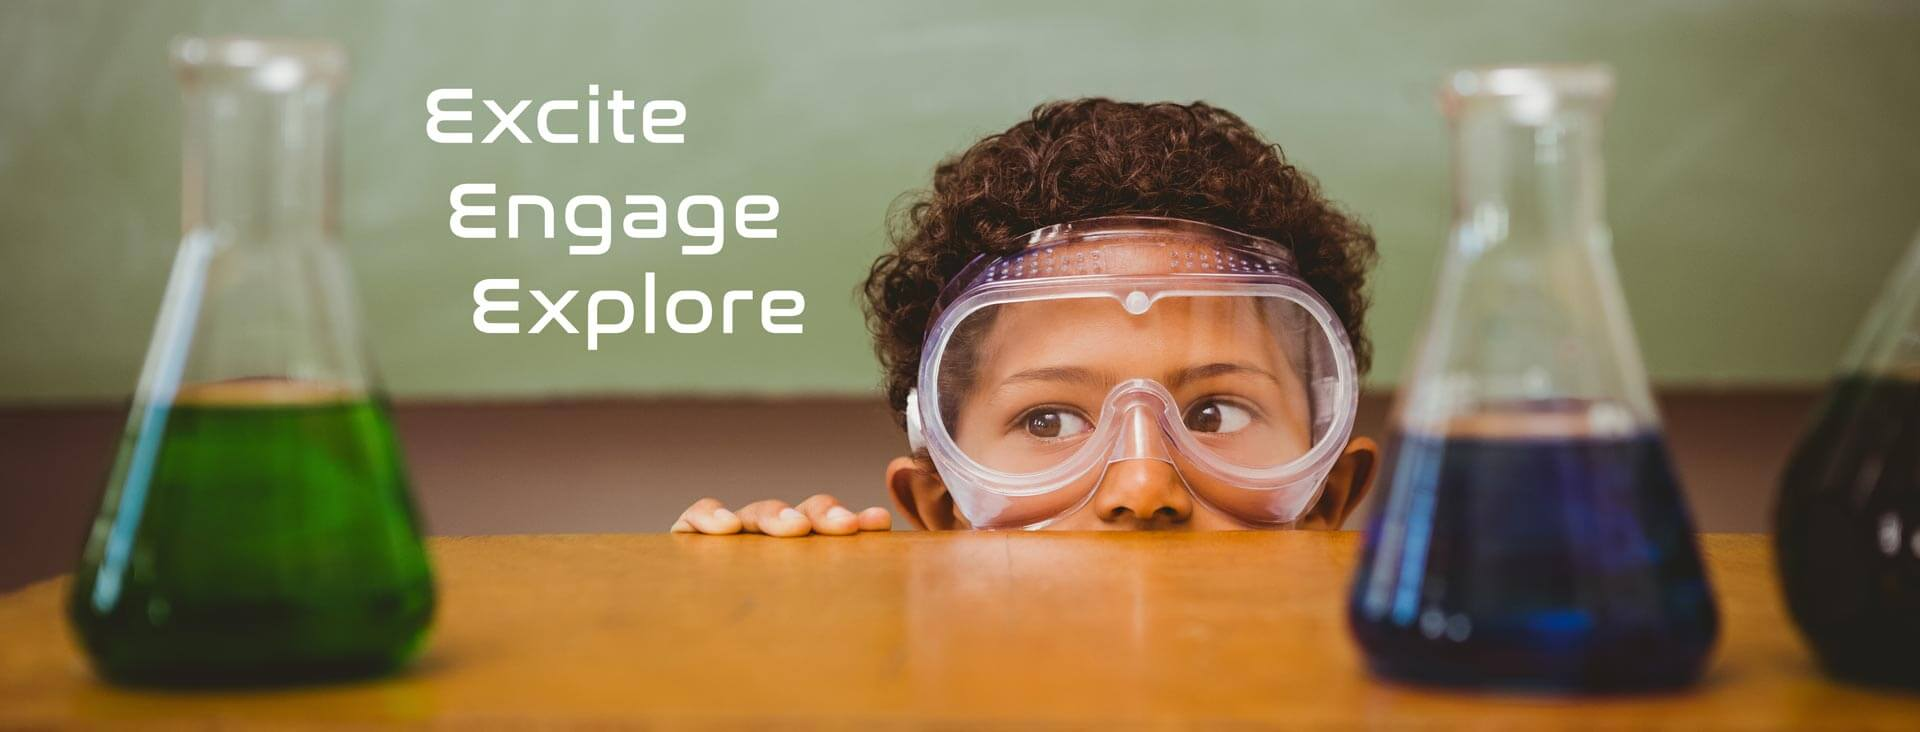 Excite Engage Explore